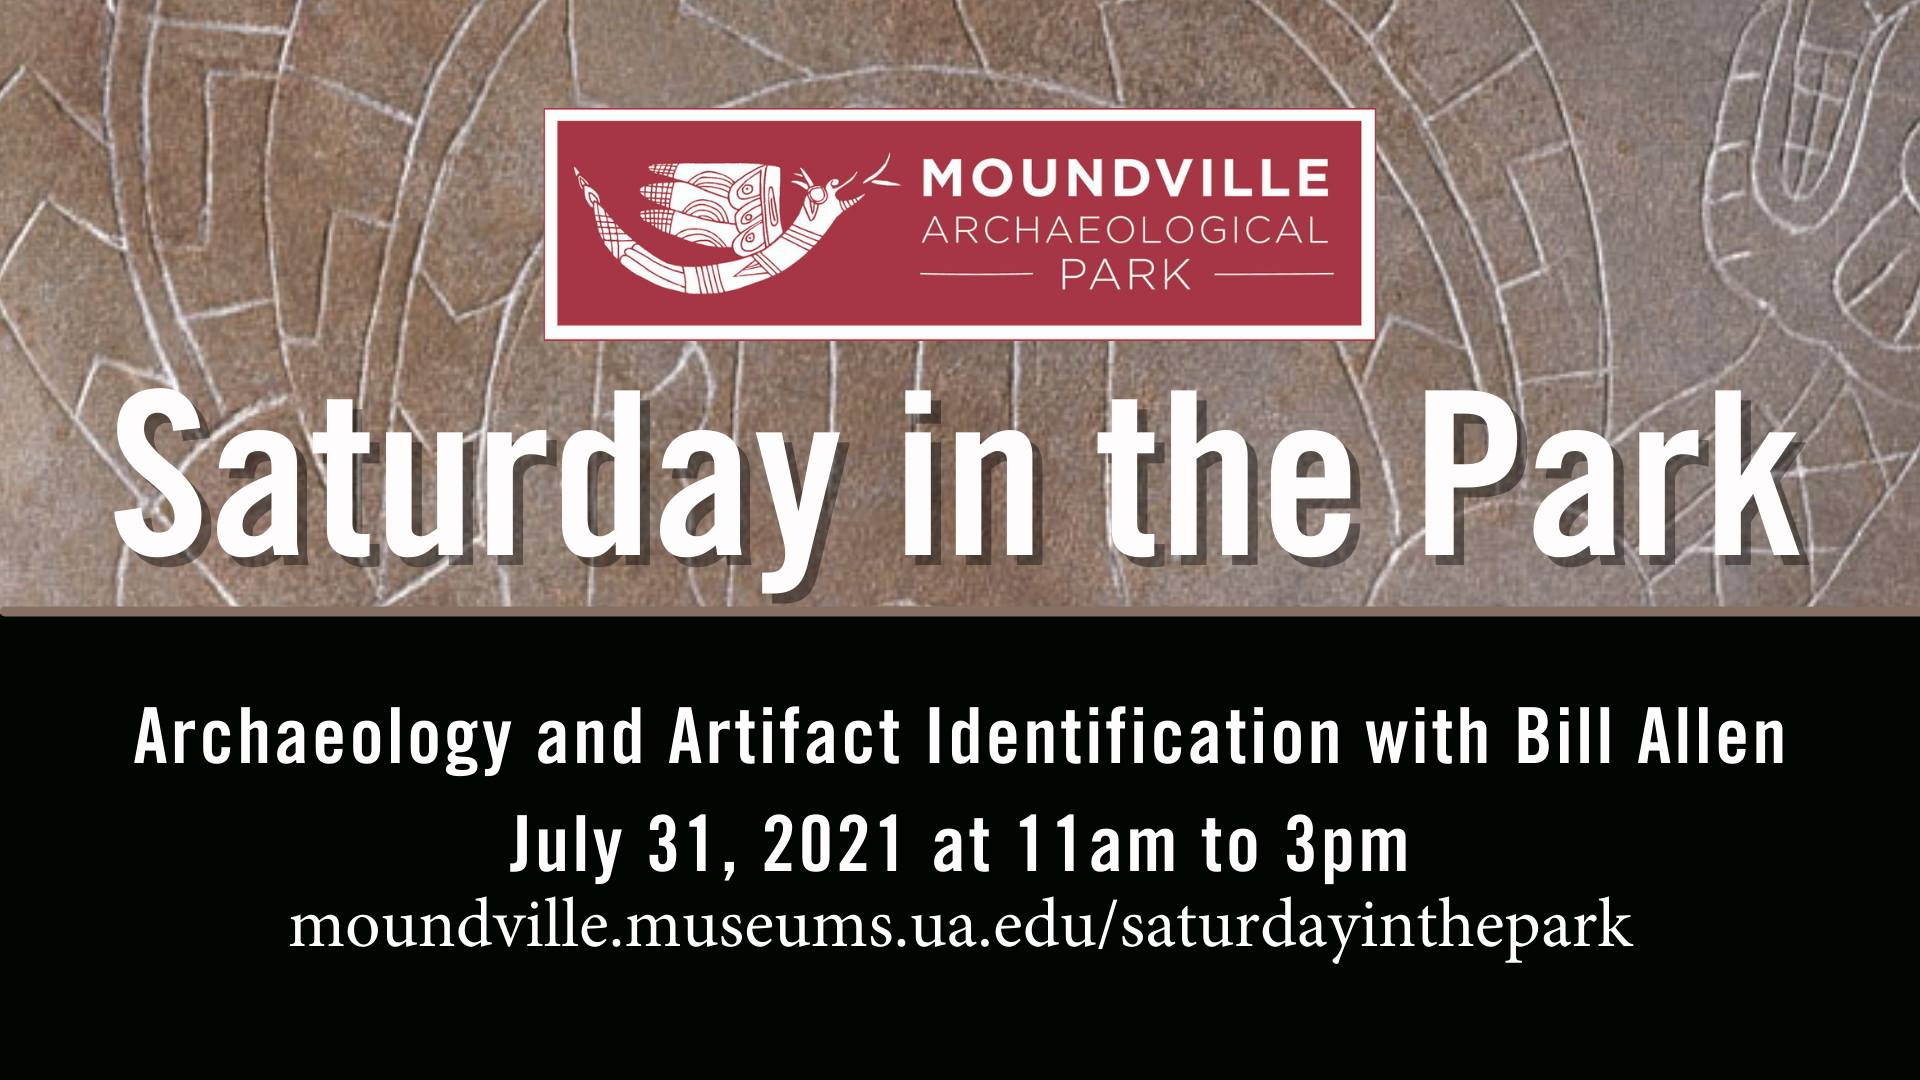 Saturday in the Park: Archaeology and Artifact Identification with Bill Allen